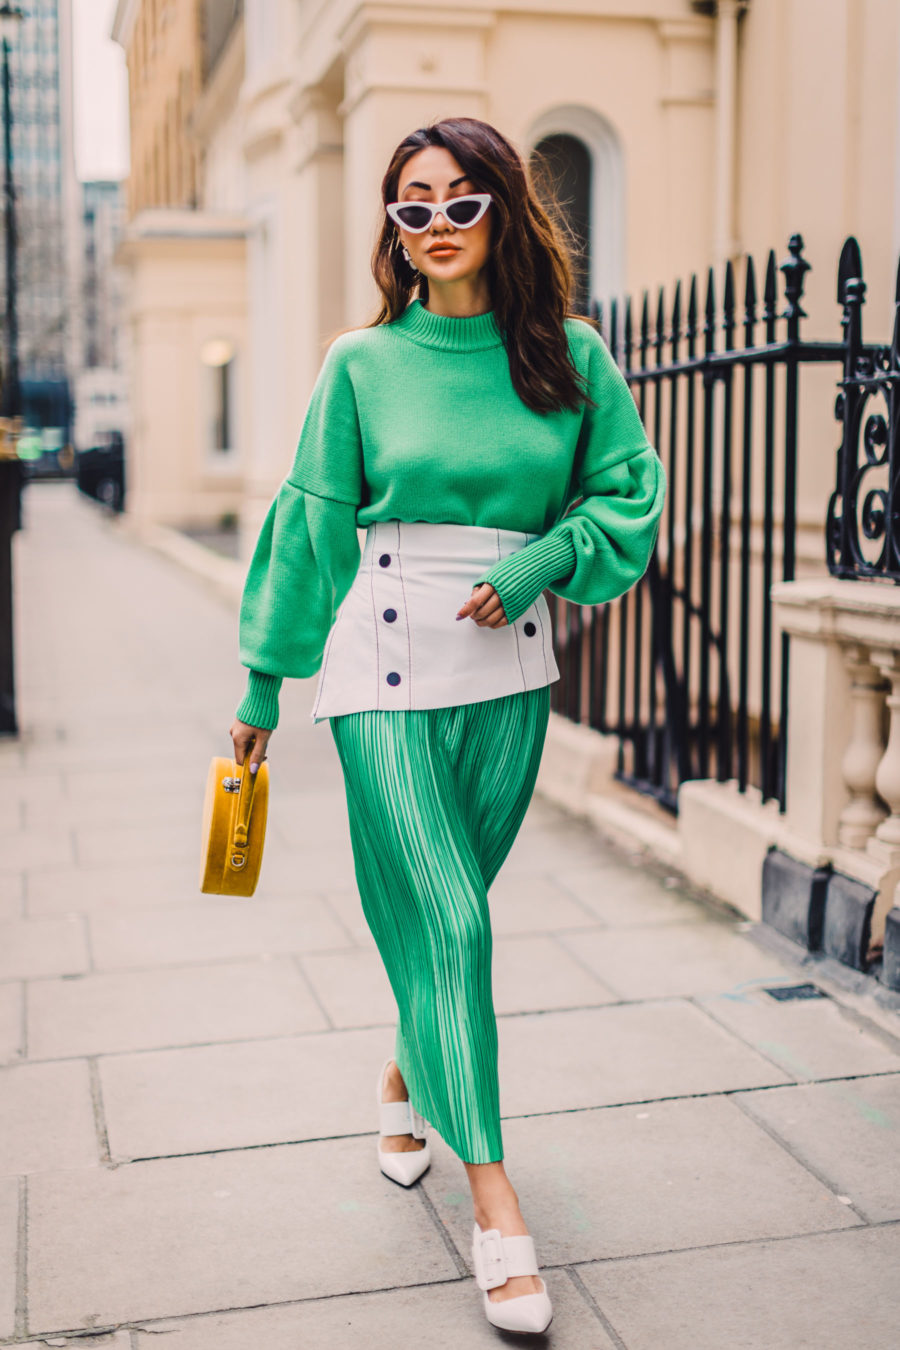 Shopbop Sale Alert - The Best Spring and Summer Items To Buy, Yellow Mini Handbag, Green Dress for Spring, White Pointed Pumps, Streetstyle, Green Pleated Dress, Jessica Wang // NotJessFashion.com